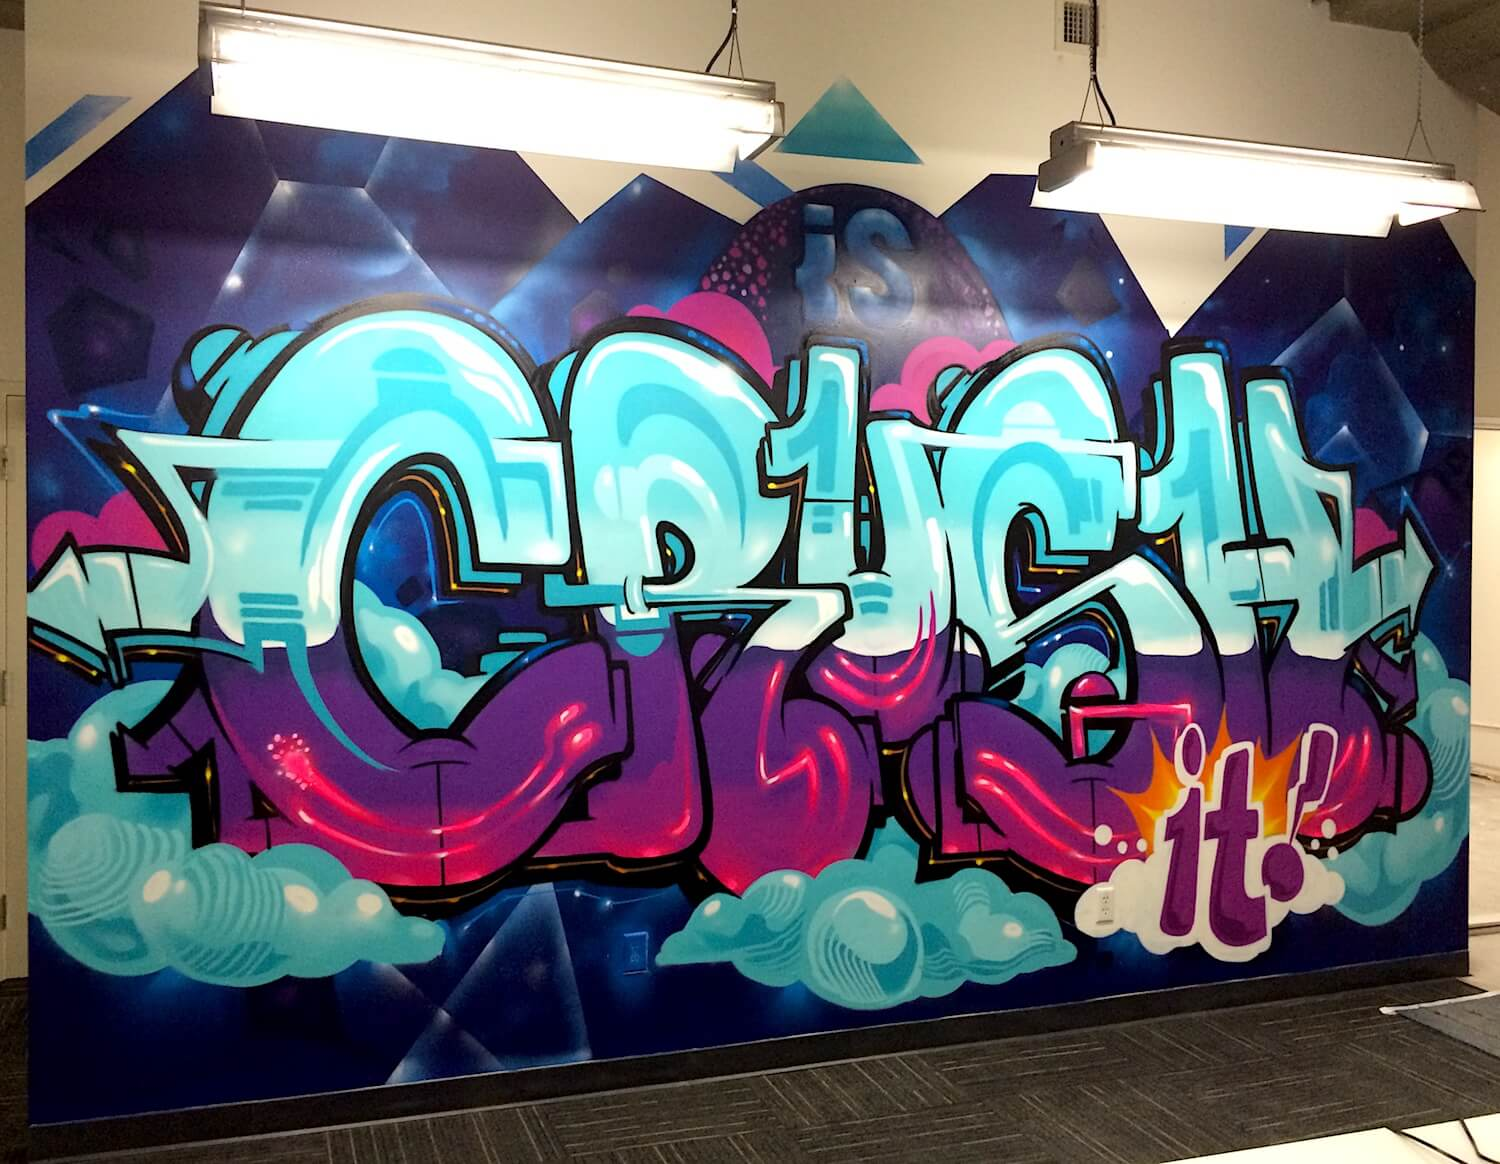 Commissioned office mural for ironsource 2 san francisco usa 2016